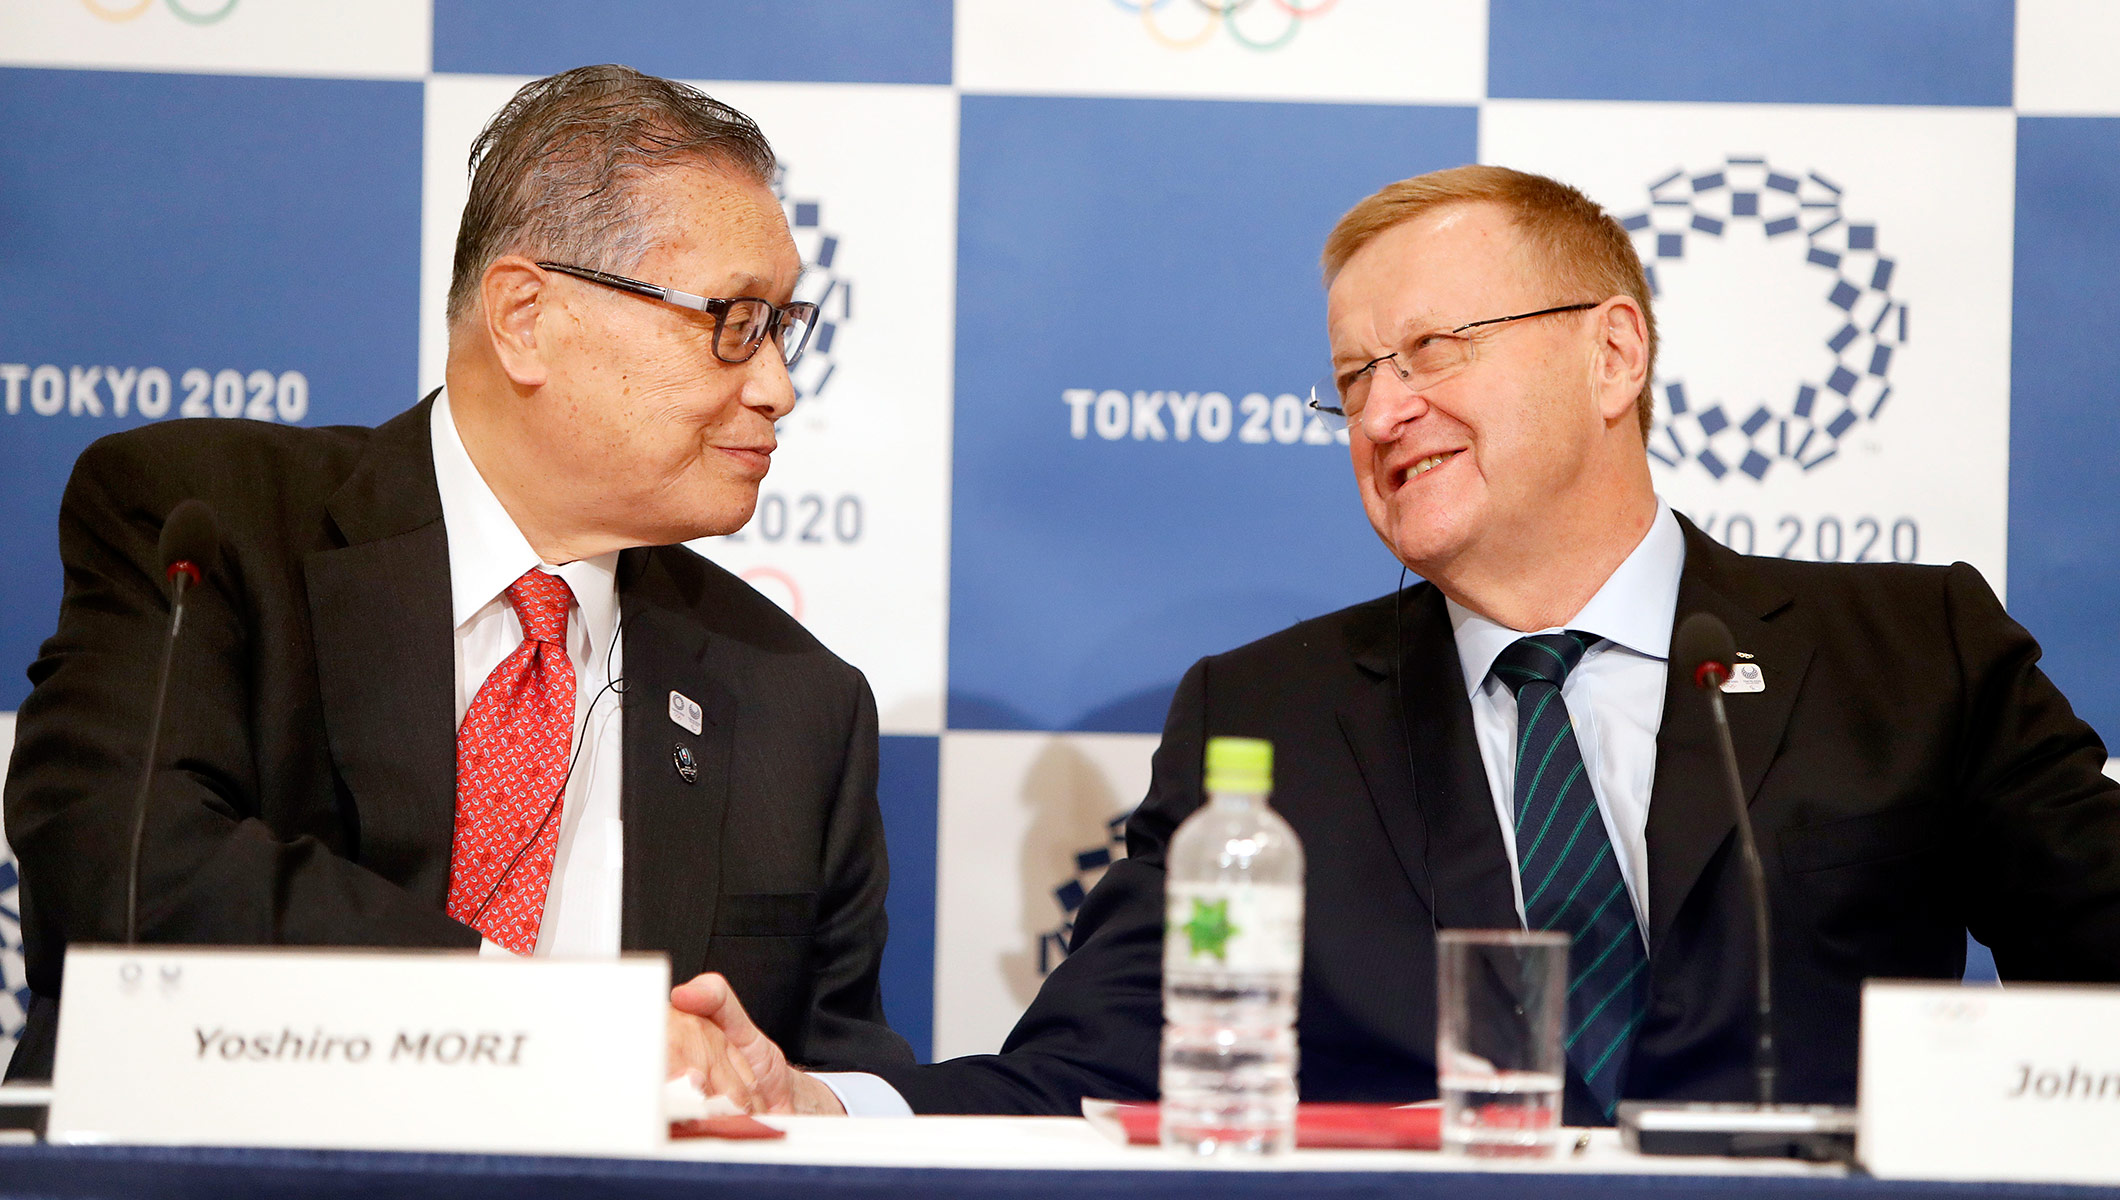 Tokyo 2020 President Yoshiro Mori and the Chair of the Coordination Commission, John Coates.